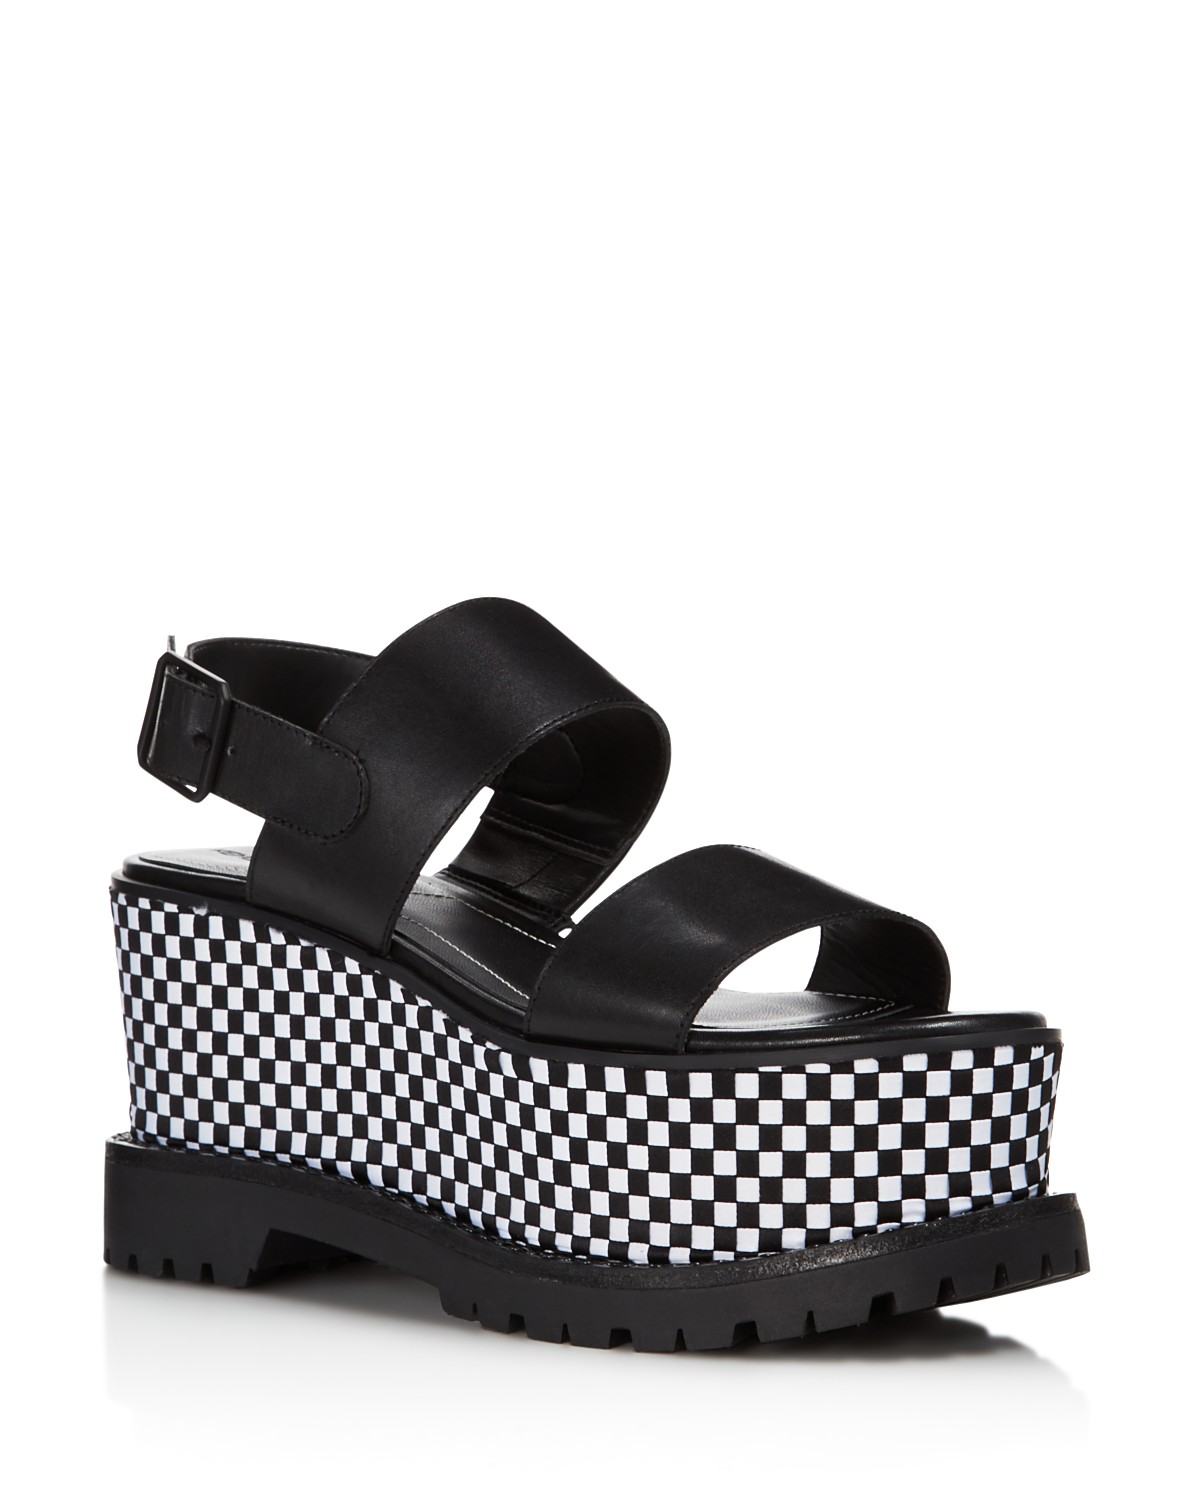 Kendall And Kylie Women's Cady Leather Platform Sandals 0VHDT5